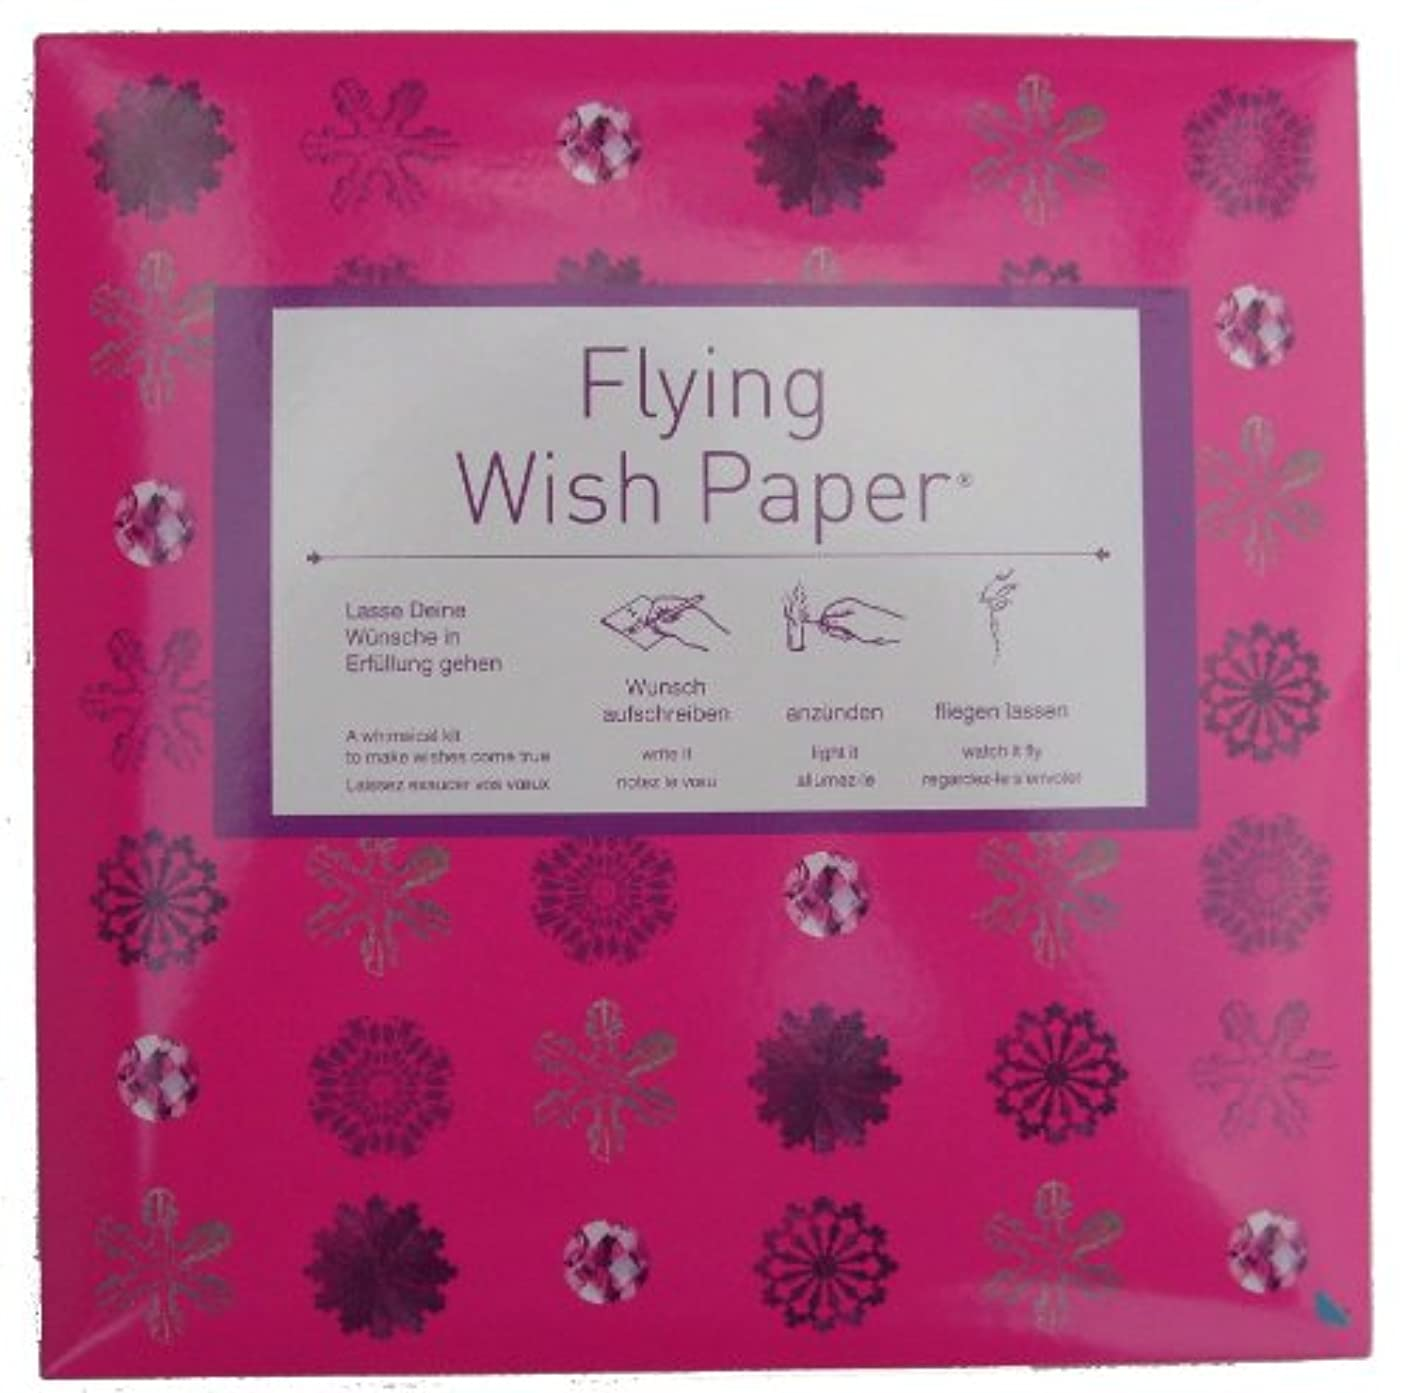 Contento 4028126169704 Flying Wish Paper Flower, One Size, Pink